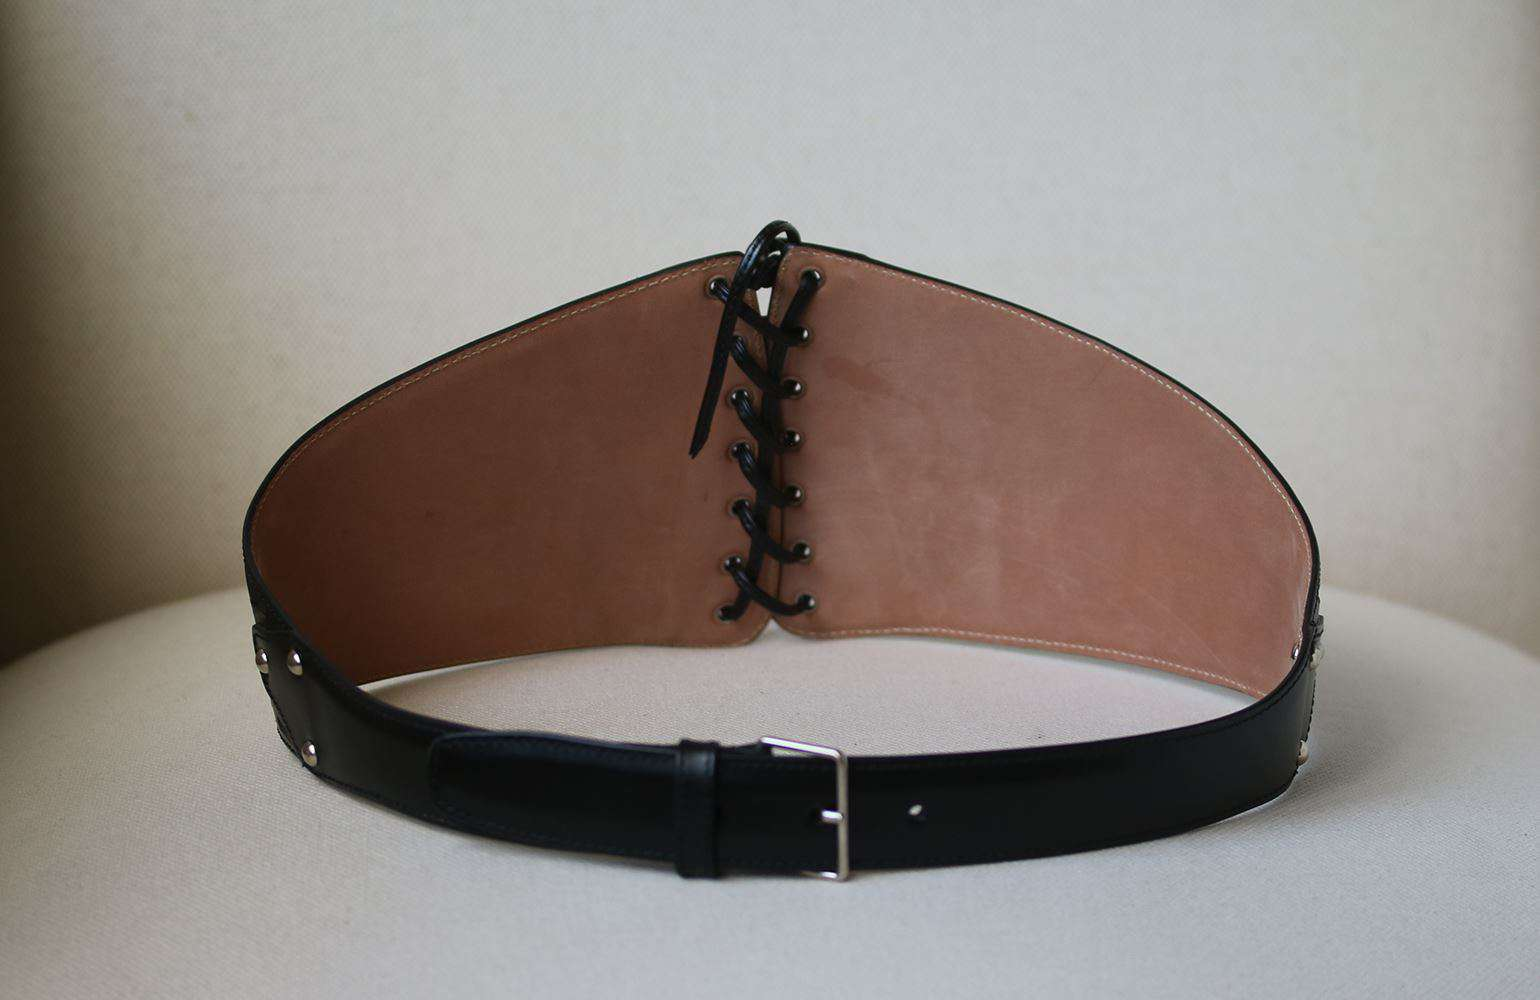 AZZEDINE ALAIA LACE UP CUT OUT LEATHER BELT EU 75 UK 8